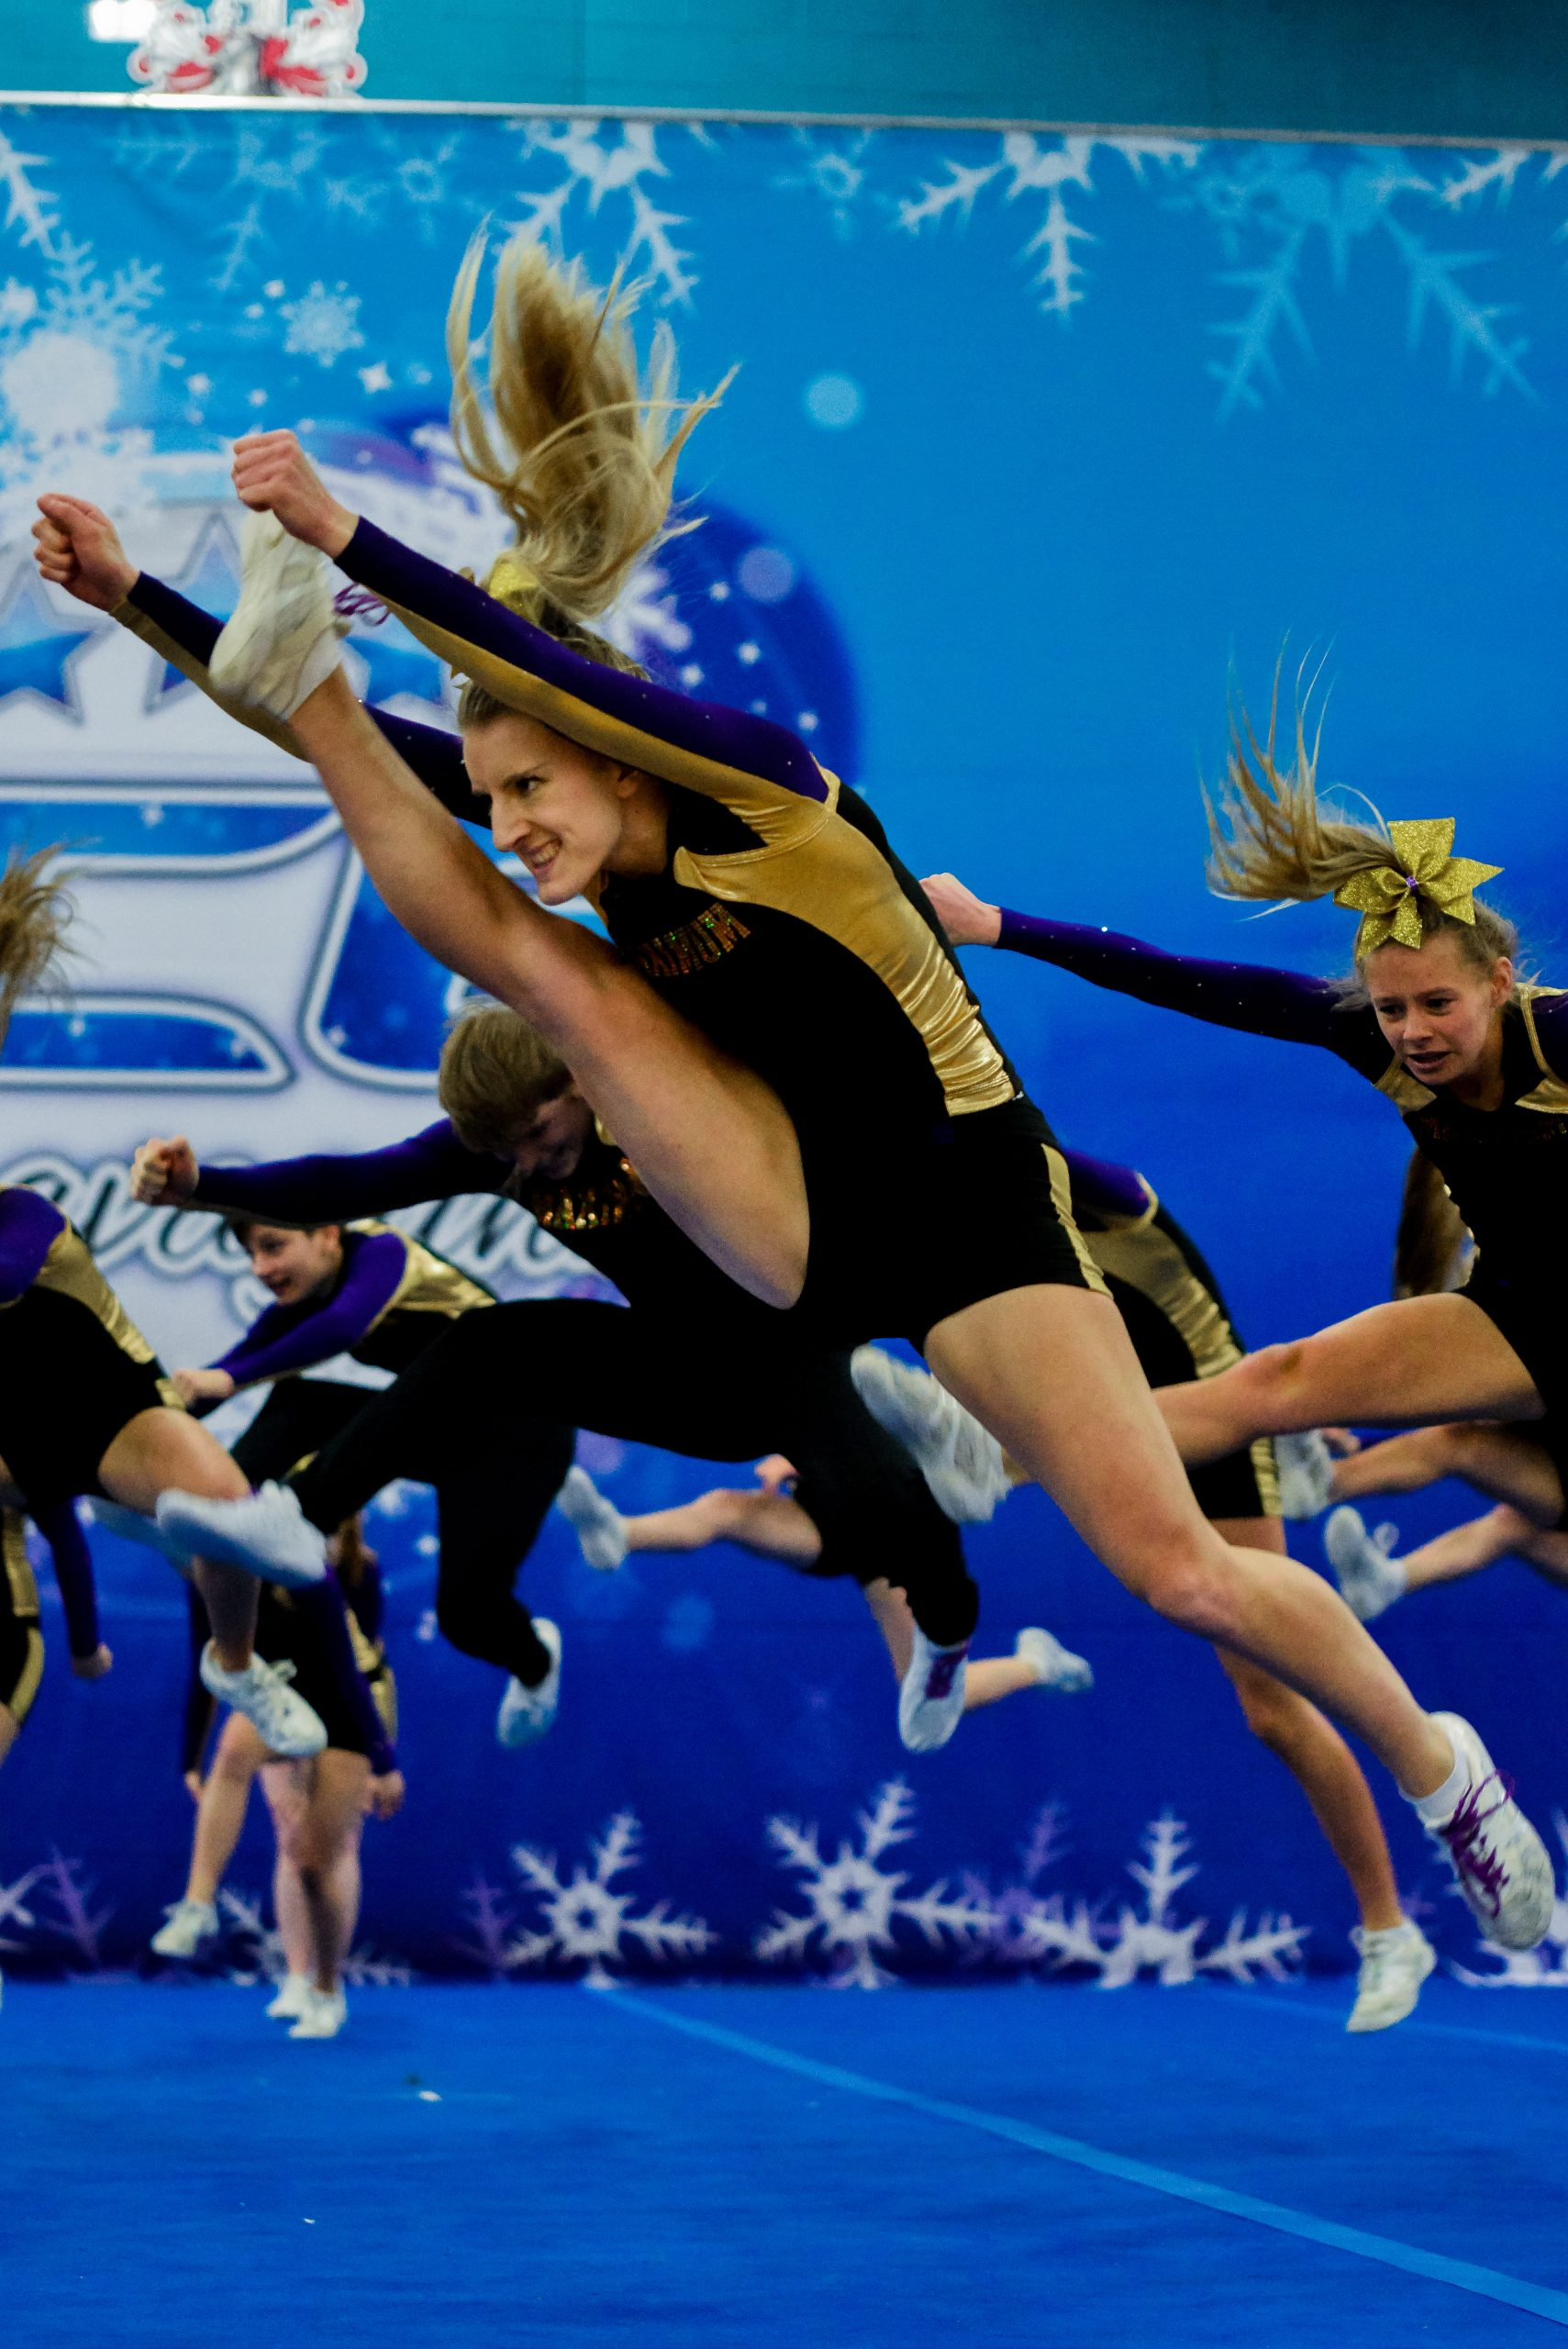 Athletes compete cheer jumps at an ICE Extravaganza competition